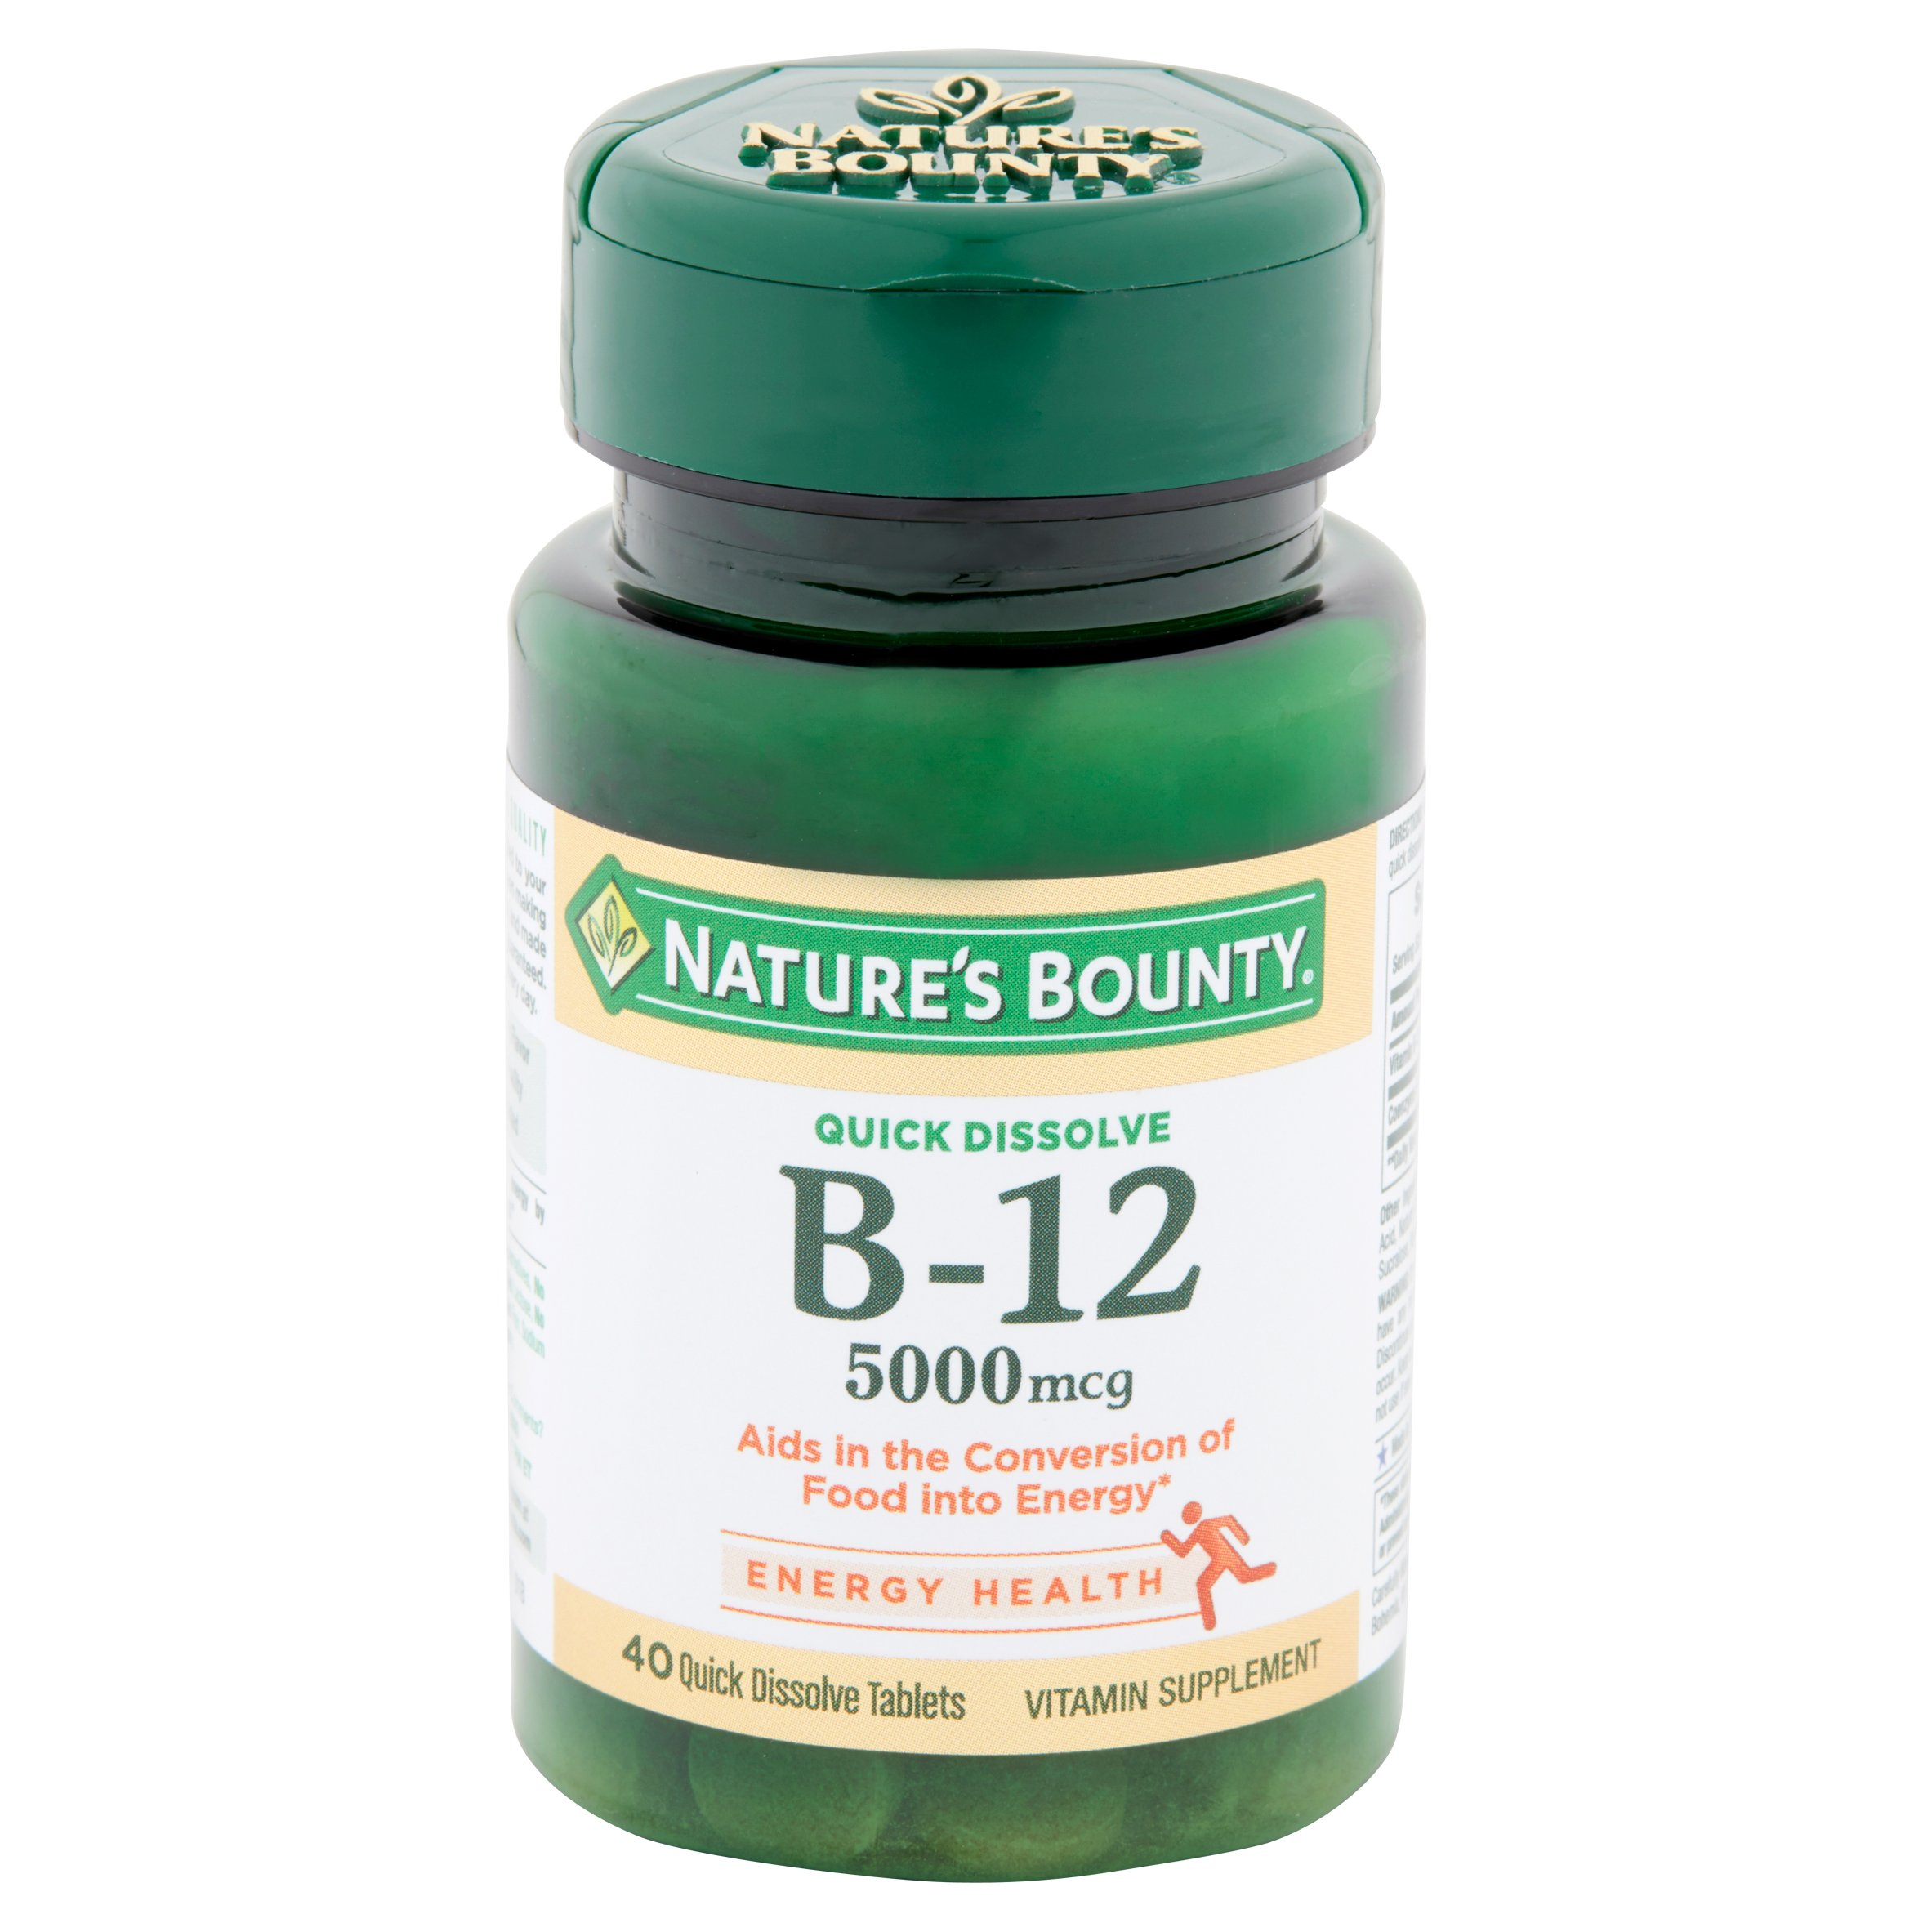 Nature's Bounty Quick Dissolve B-12 Tablets, 5000 mcg, 40 Ct